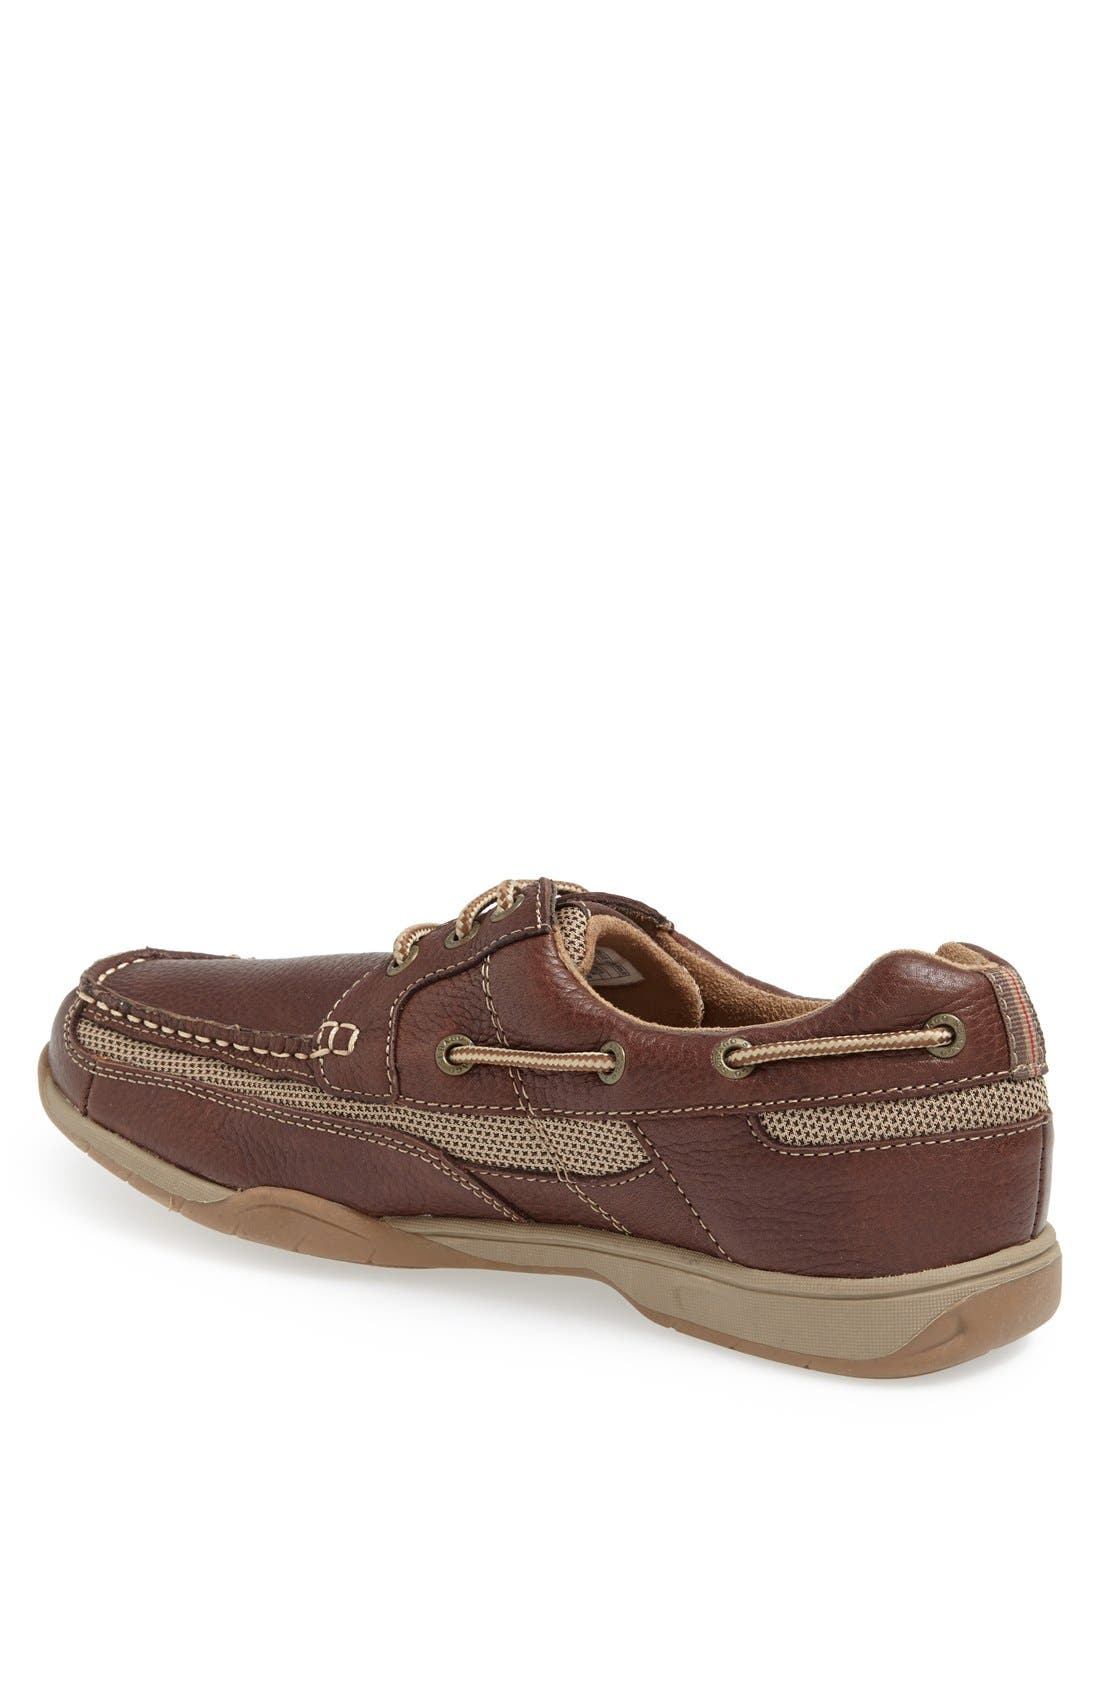 Alternate Image 2  - Sebago 'Carrick' Boat Shoe